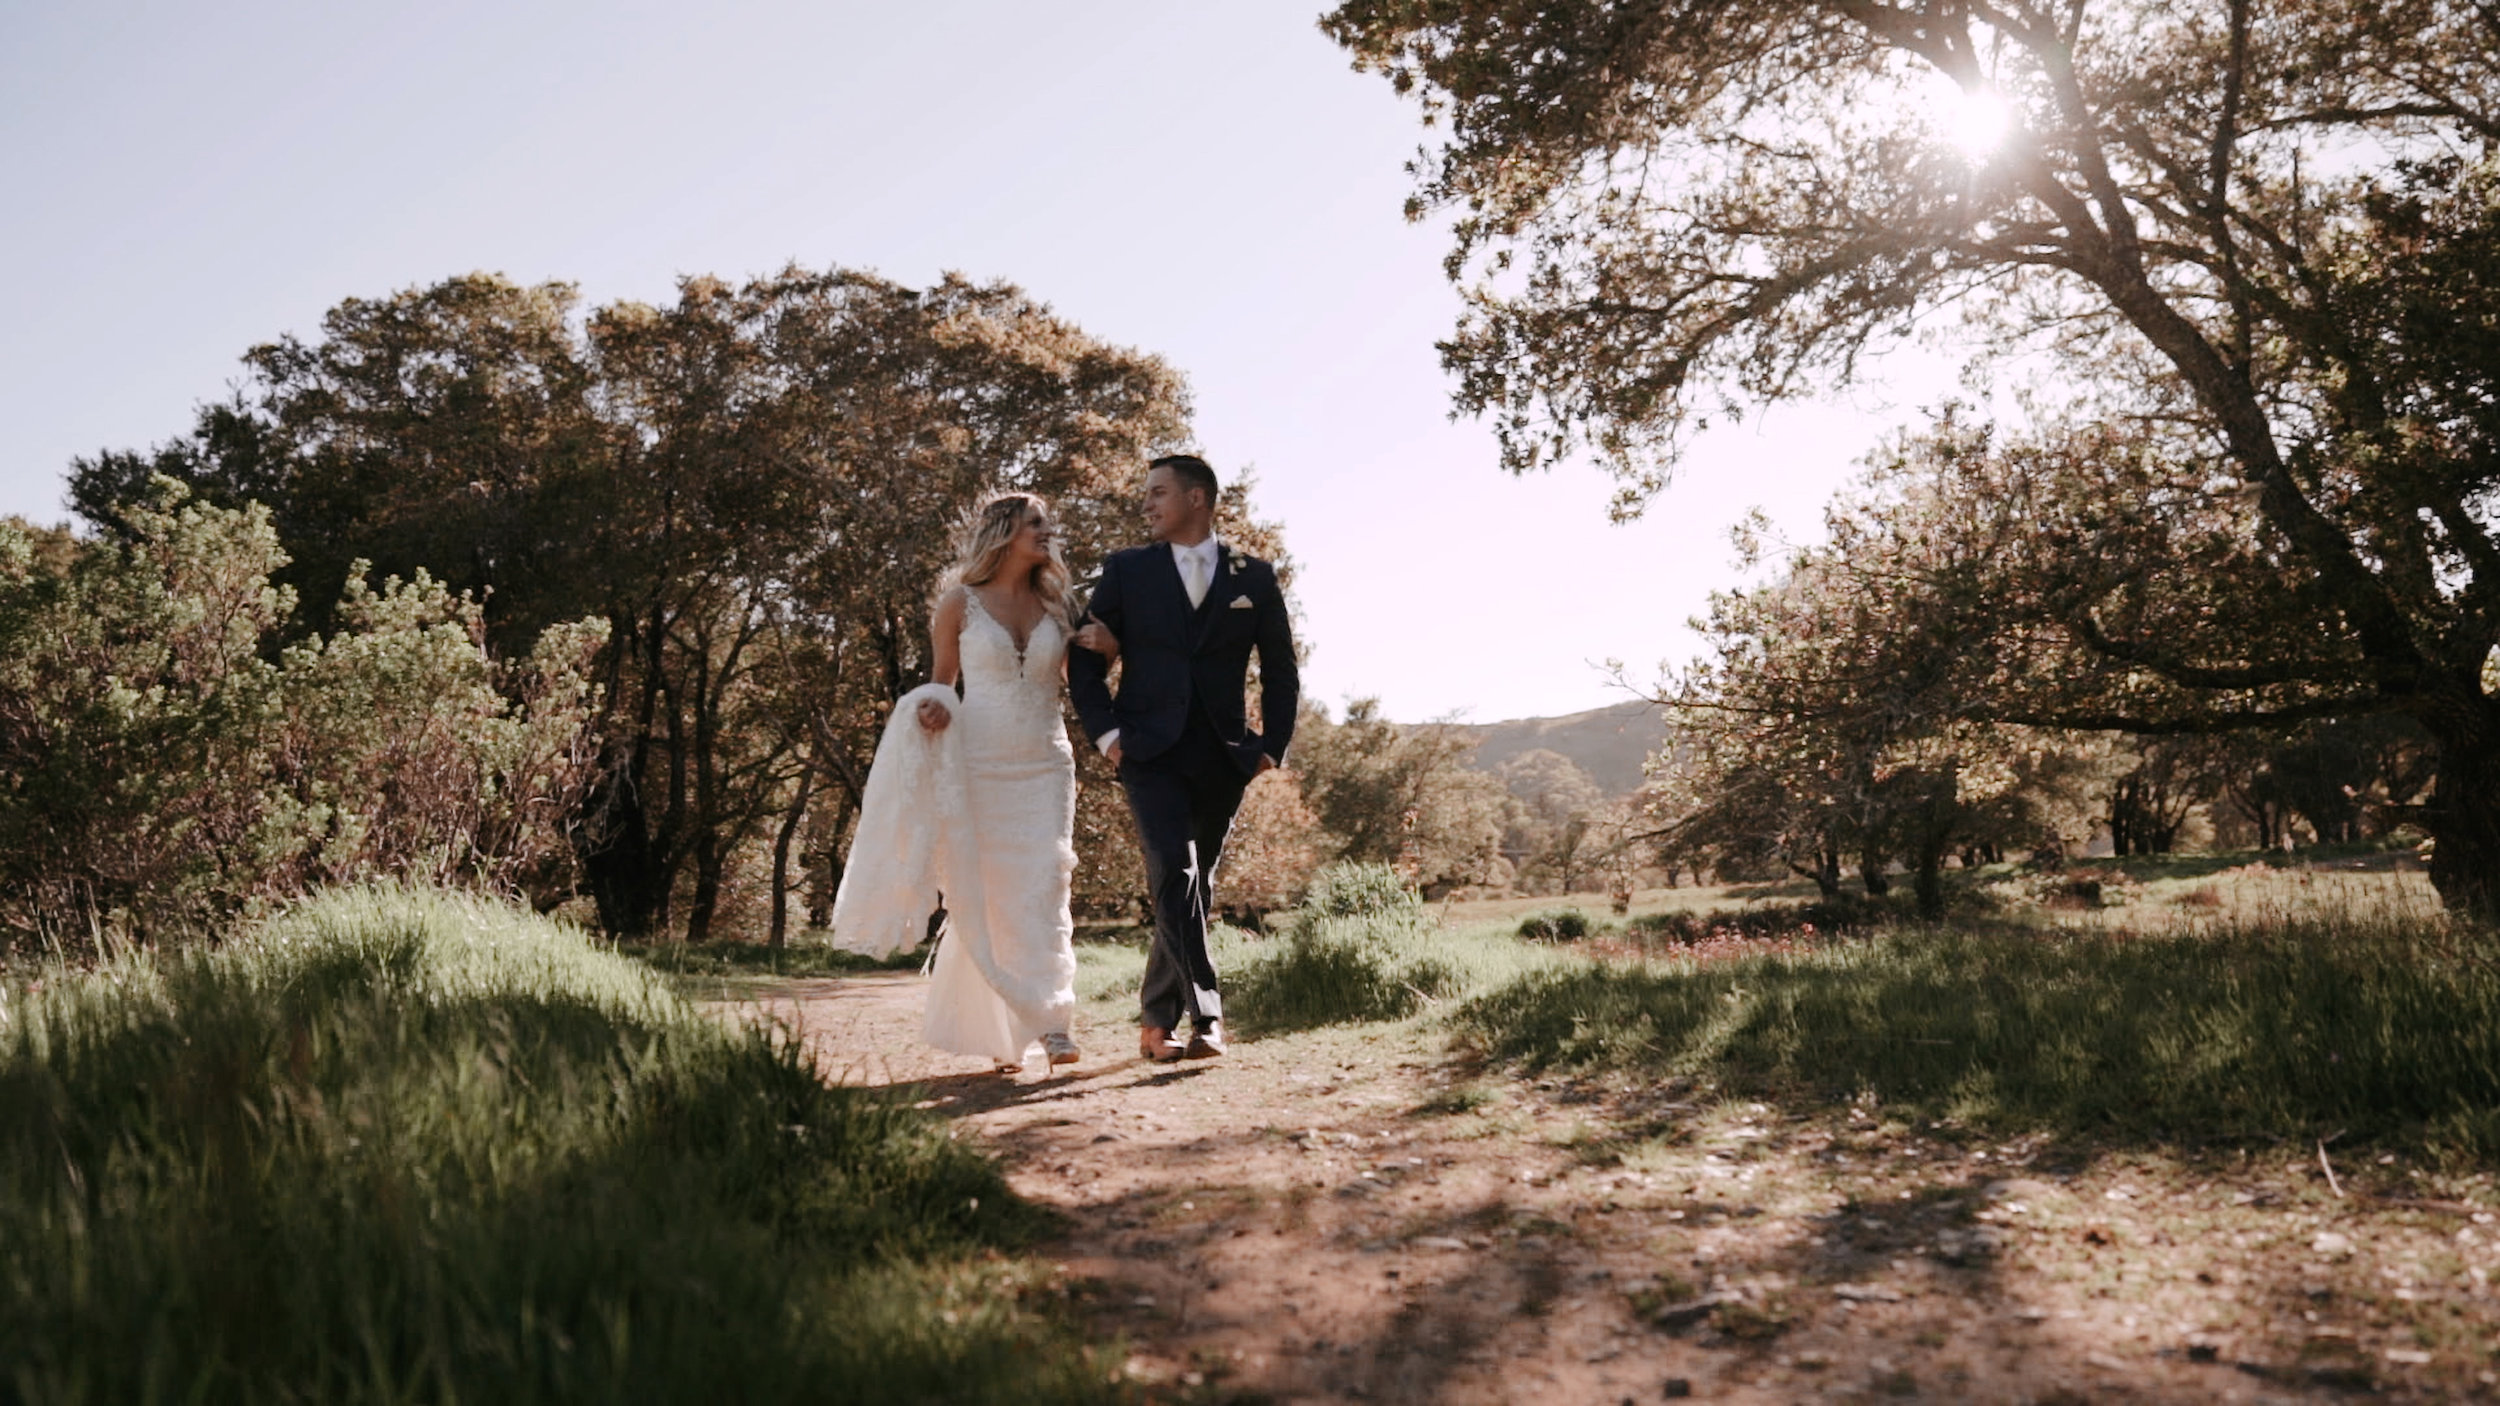 BRITTNEY + GARRETT - Wedding at Deer Park VillaFairfax, CA